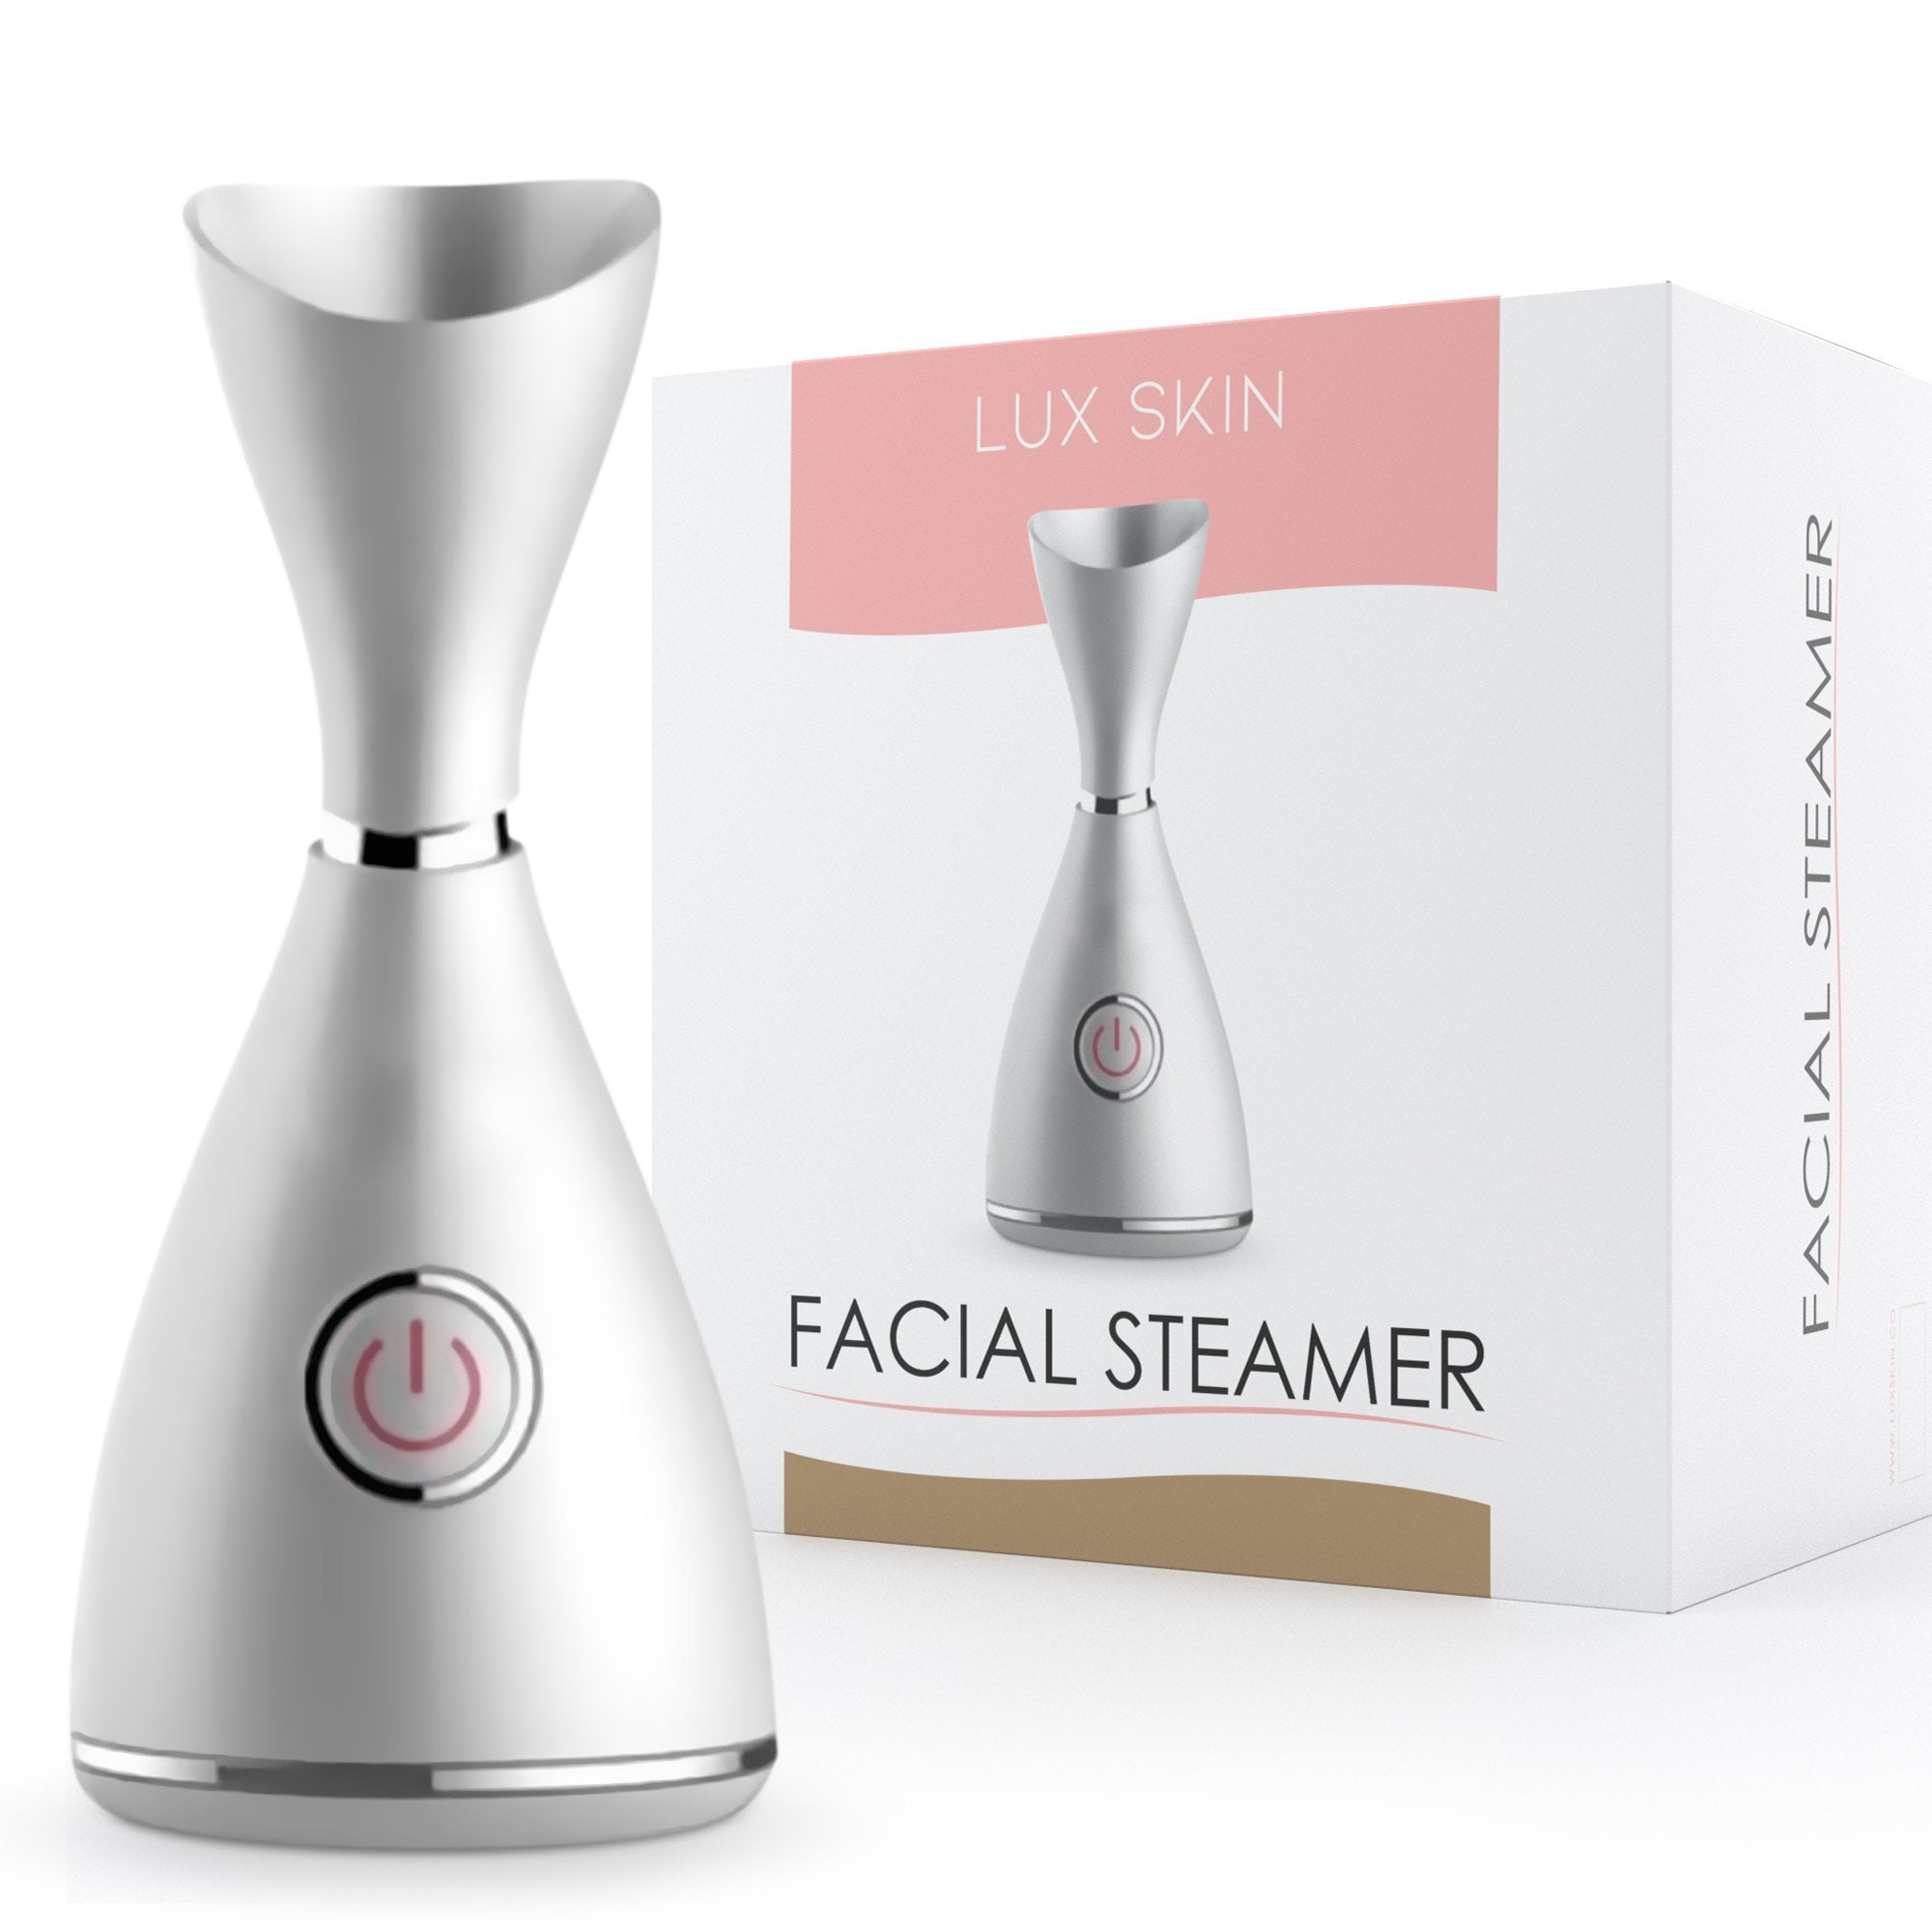 LUX SKIN® Facial Steamer (Low Stock)